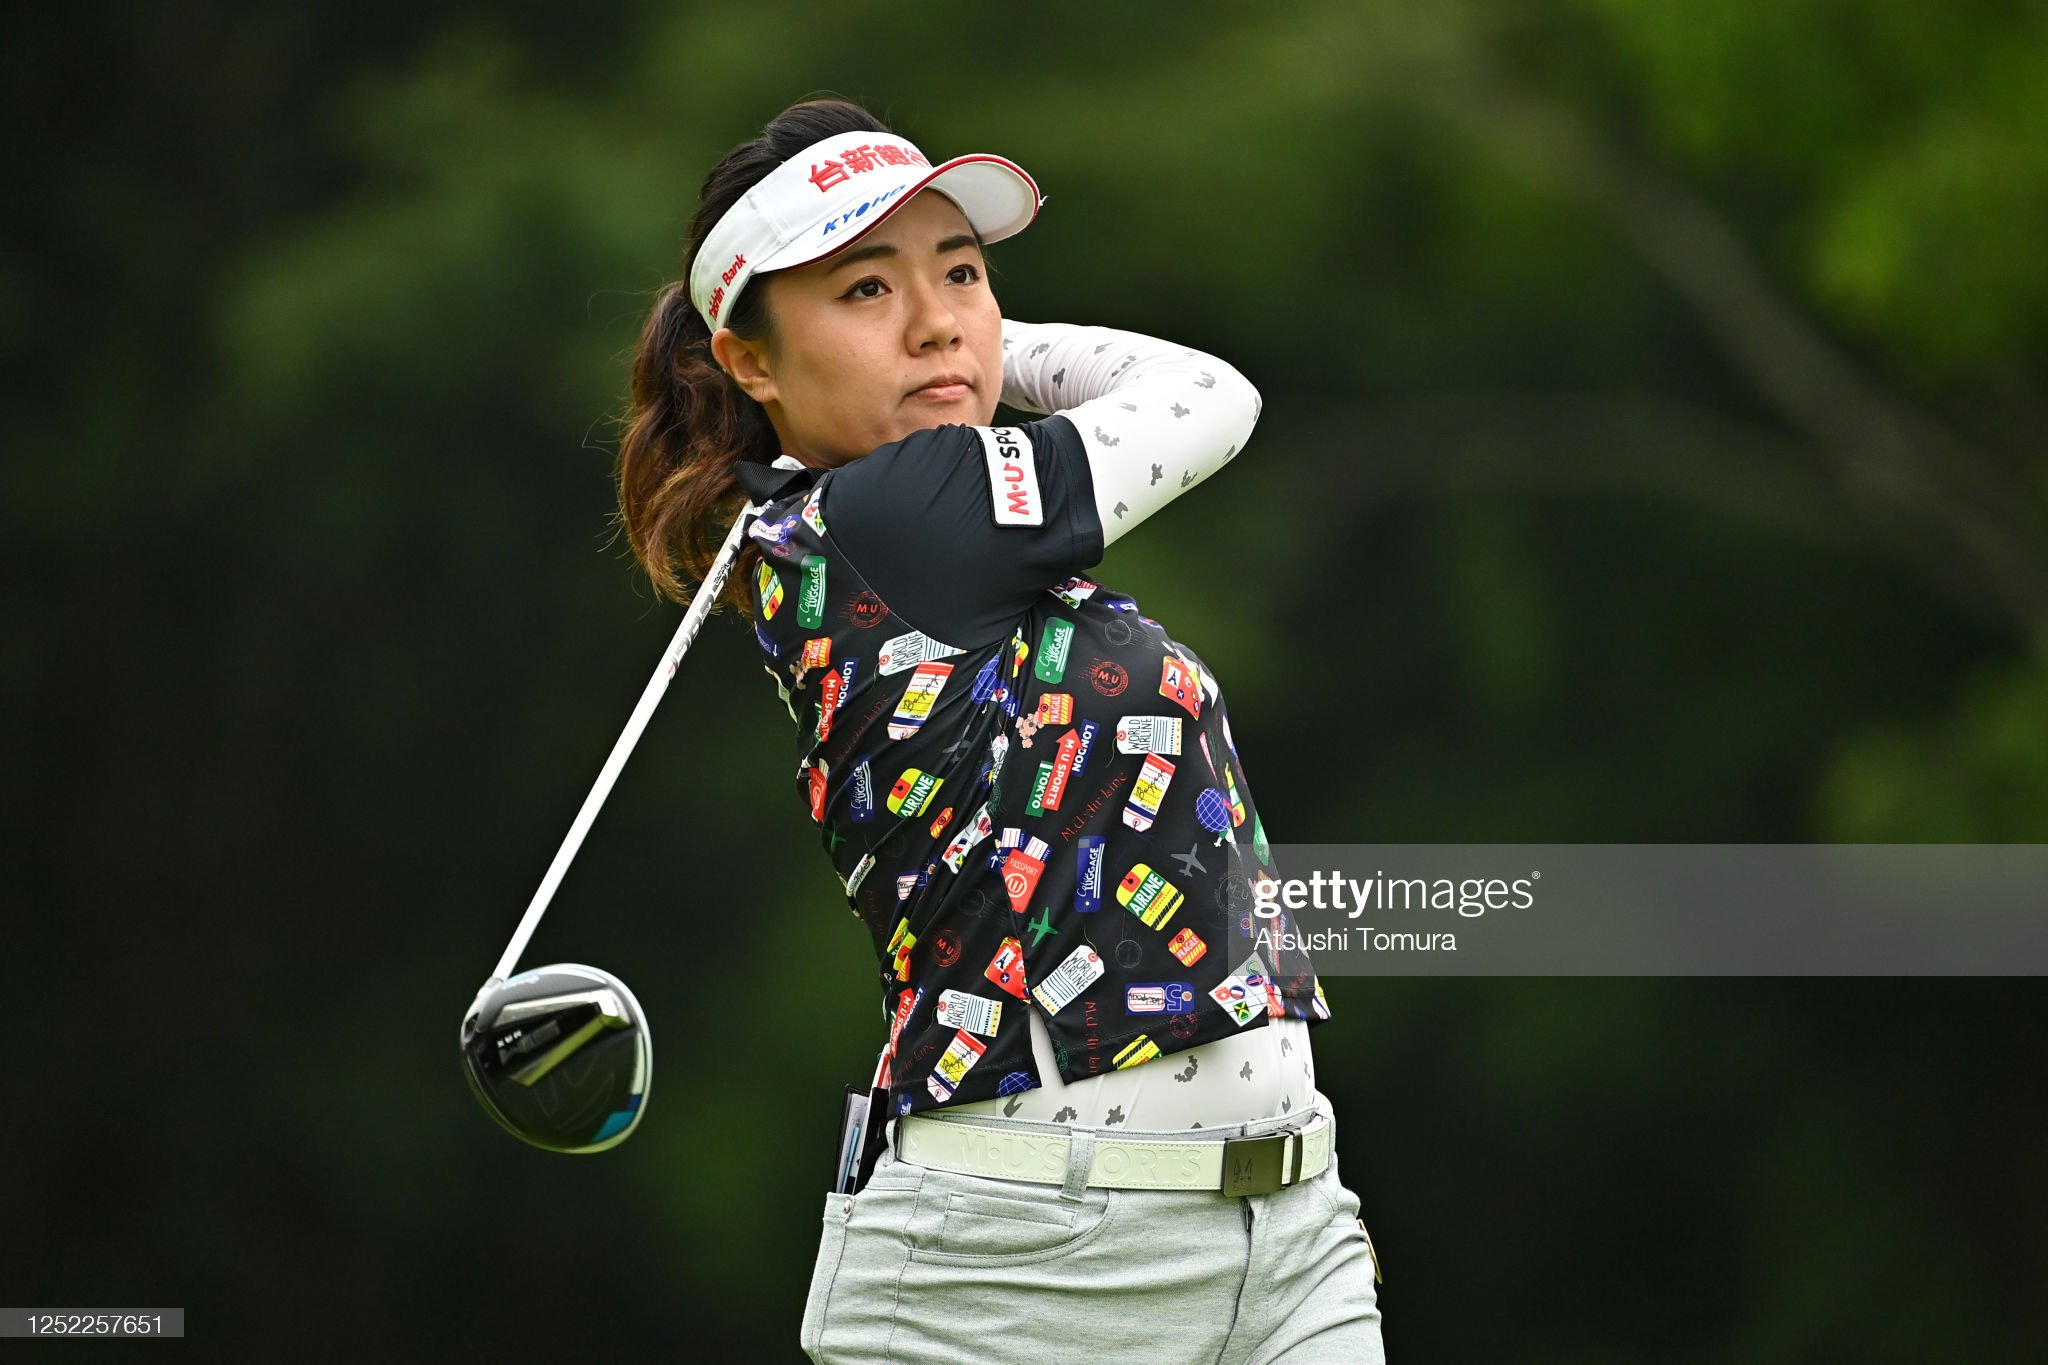 https://media.gettyimages.com/photos/peiying-tsai-of-chinese-taipei-hits-her-tee-shot-on-the-11th-hole-picture-id1252257651?s=2048x2048